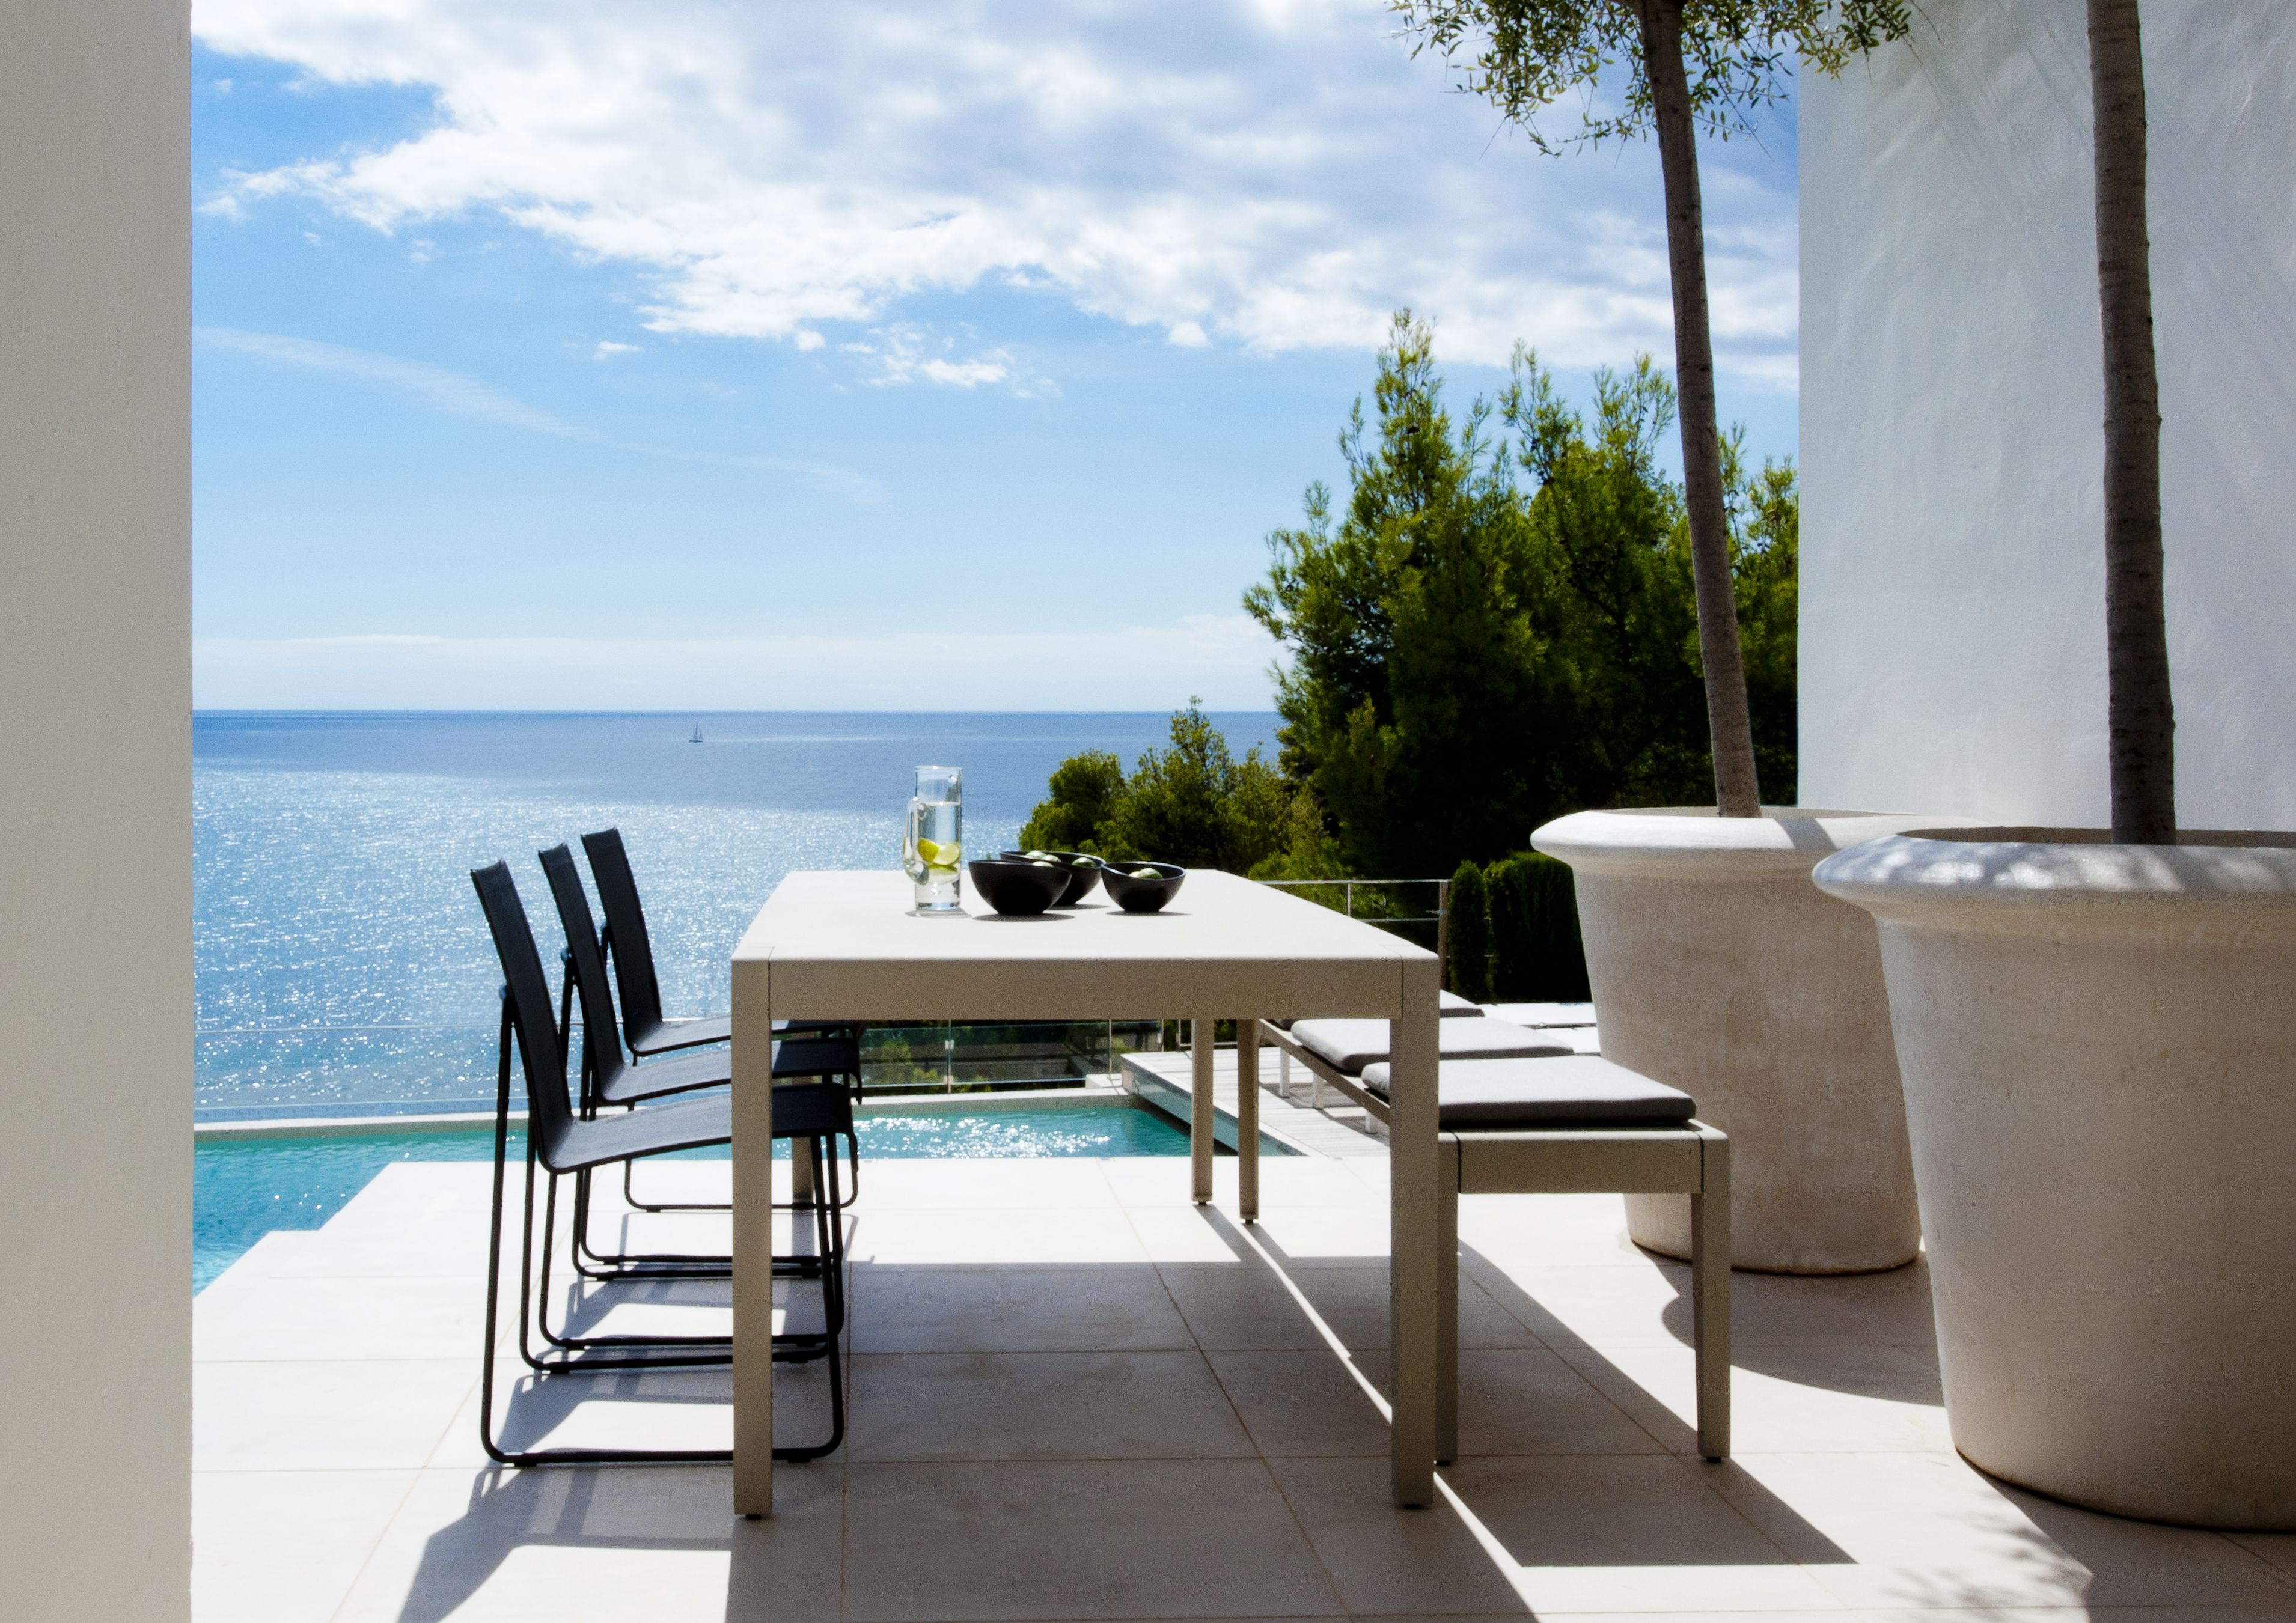 Mobilier Exterieur Tribu Tribu Arc 户外 Pinterest Jardins Mobilier And Chaise